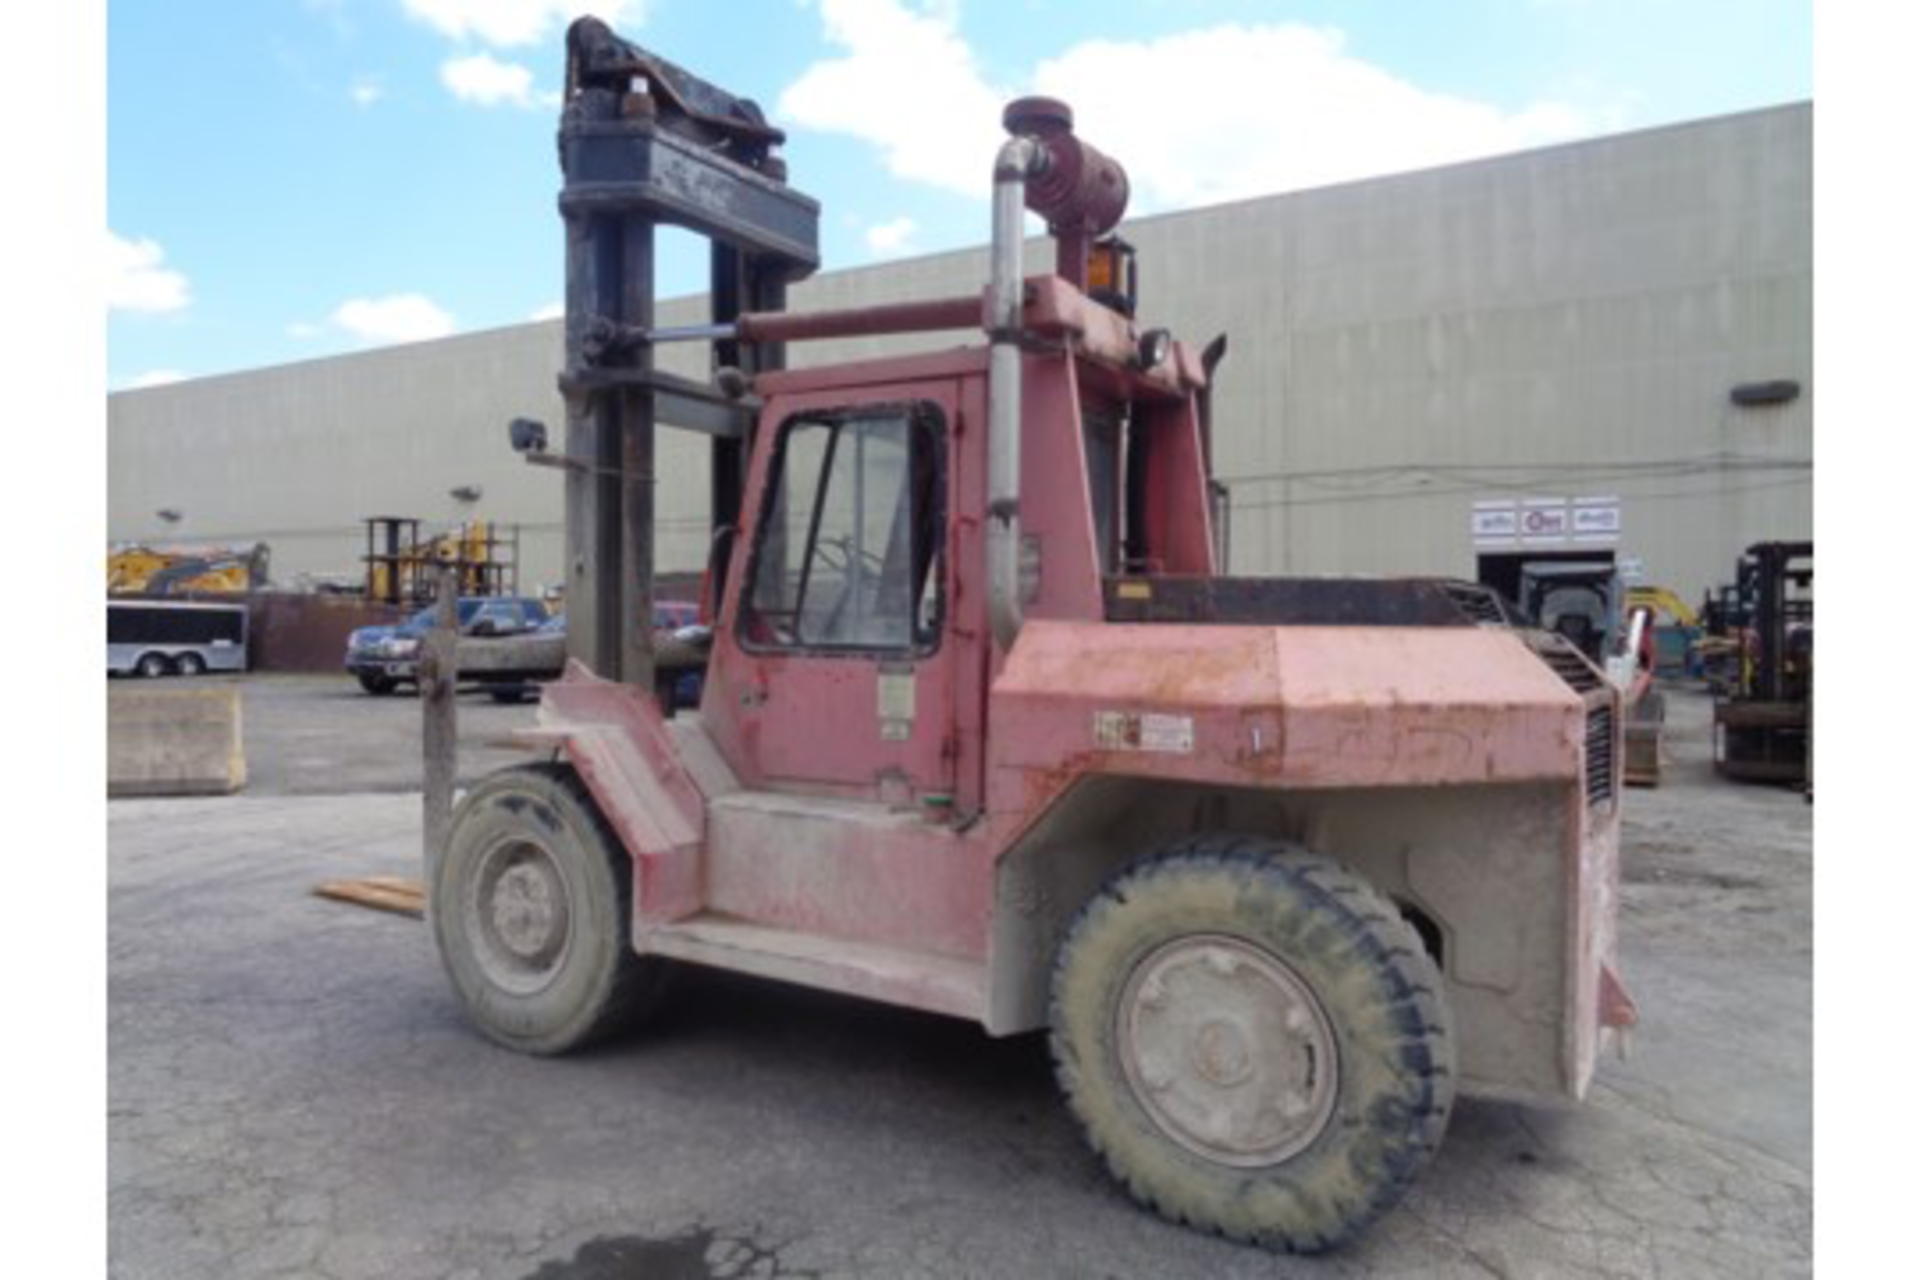 Taylor TE200S 20,000lb Forklift - Image 5 of 10